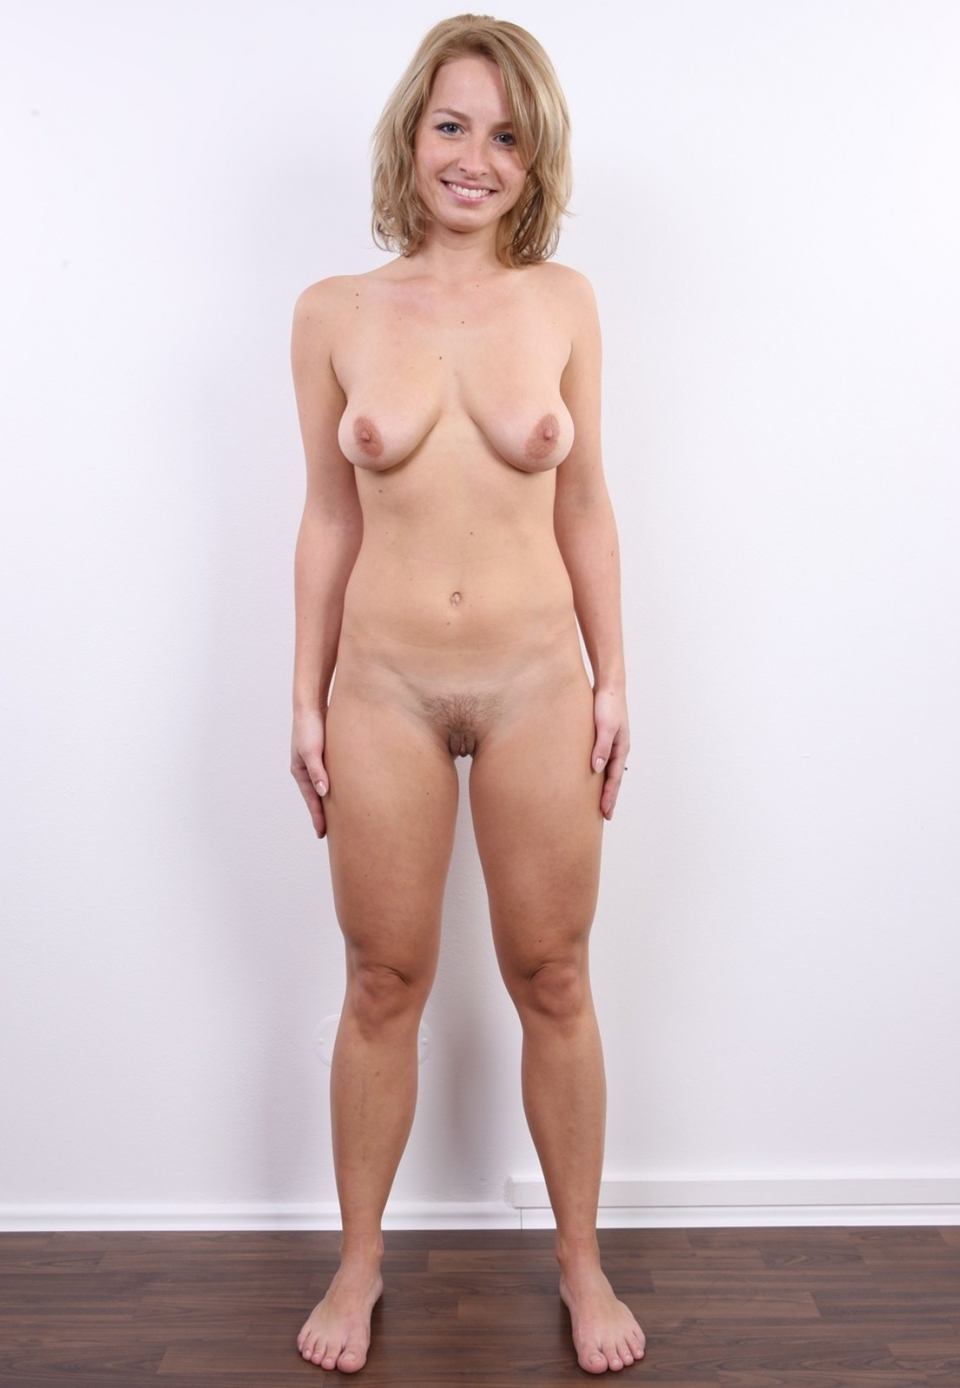 Nude women standing up naked